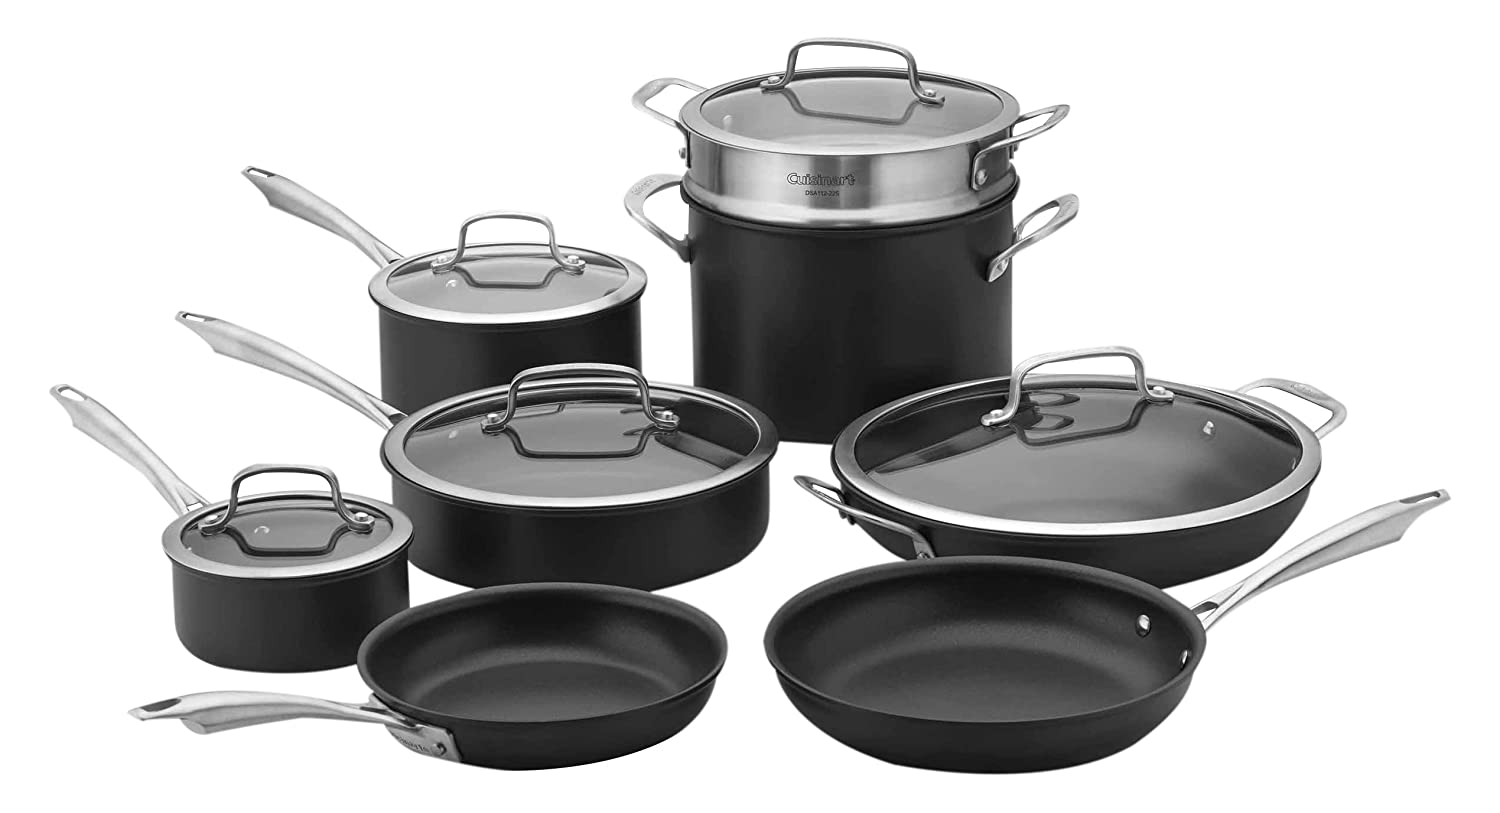 Image Result For Cookware Pots And Pans Sets Amazon